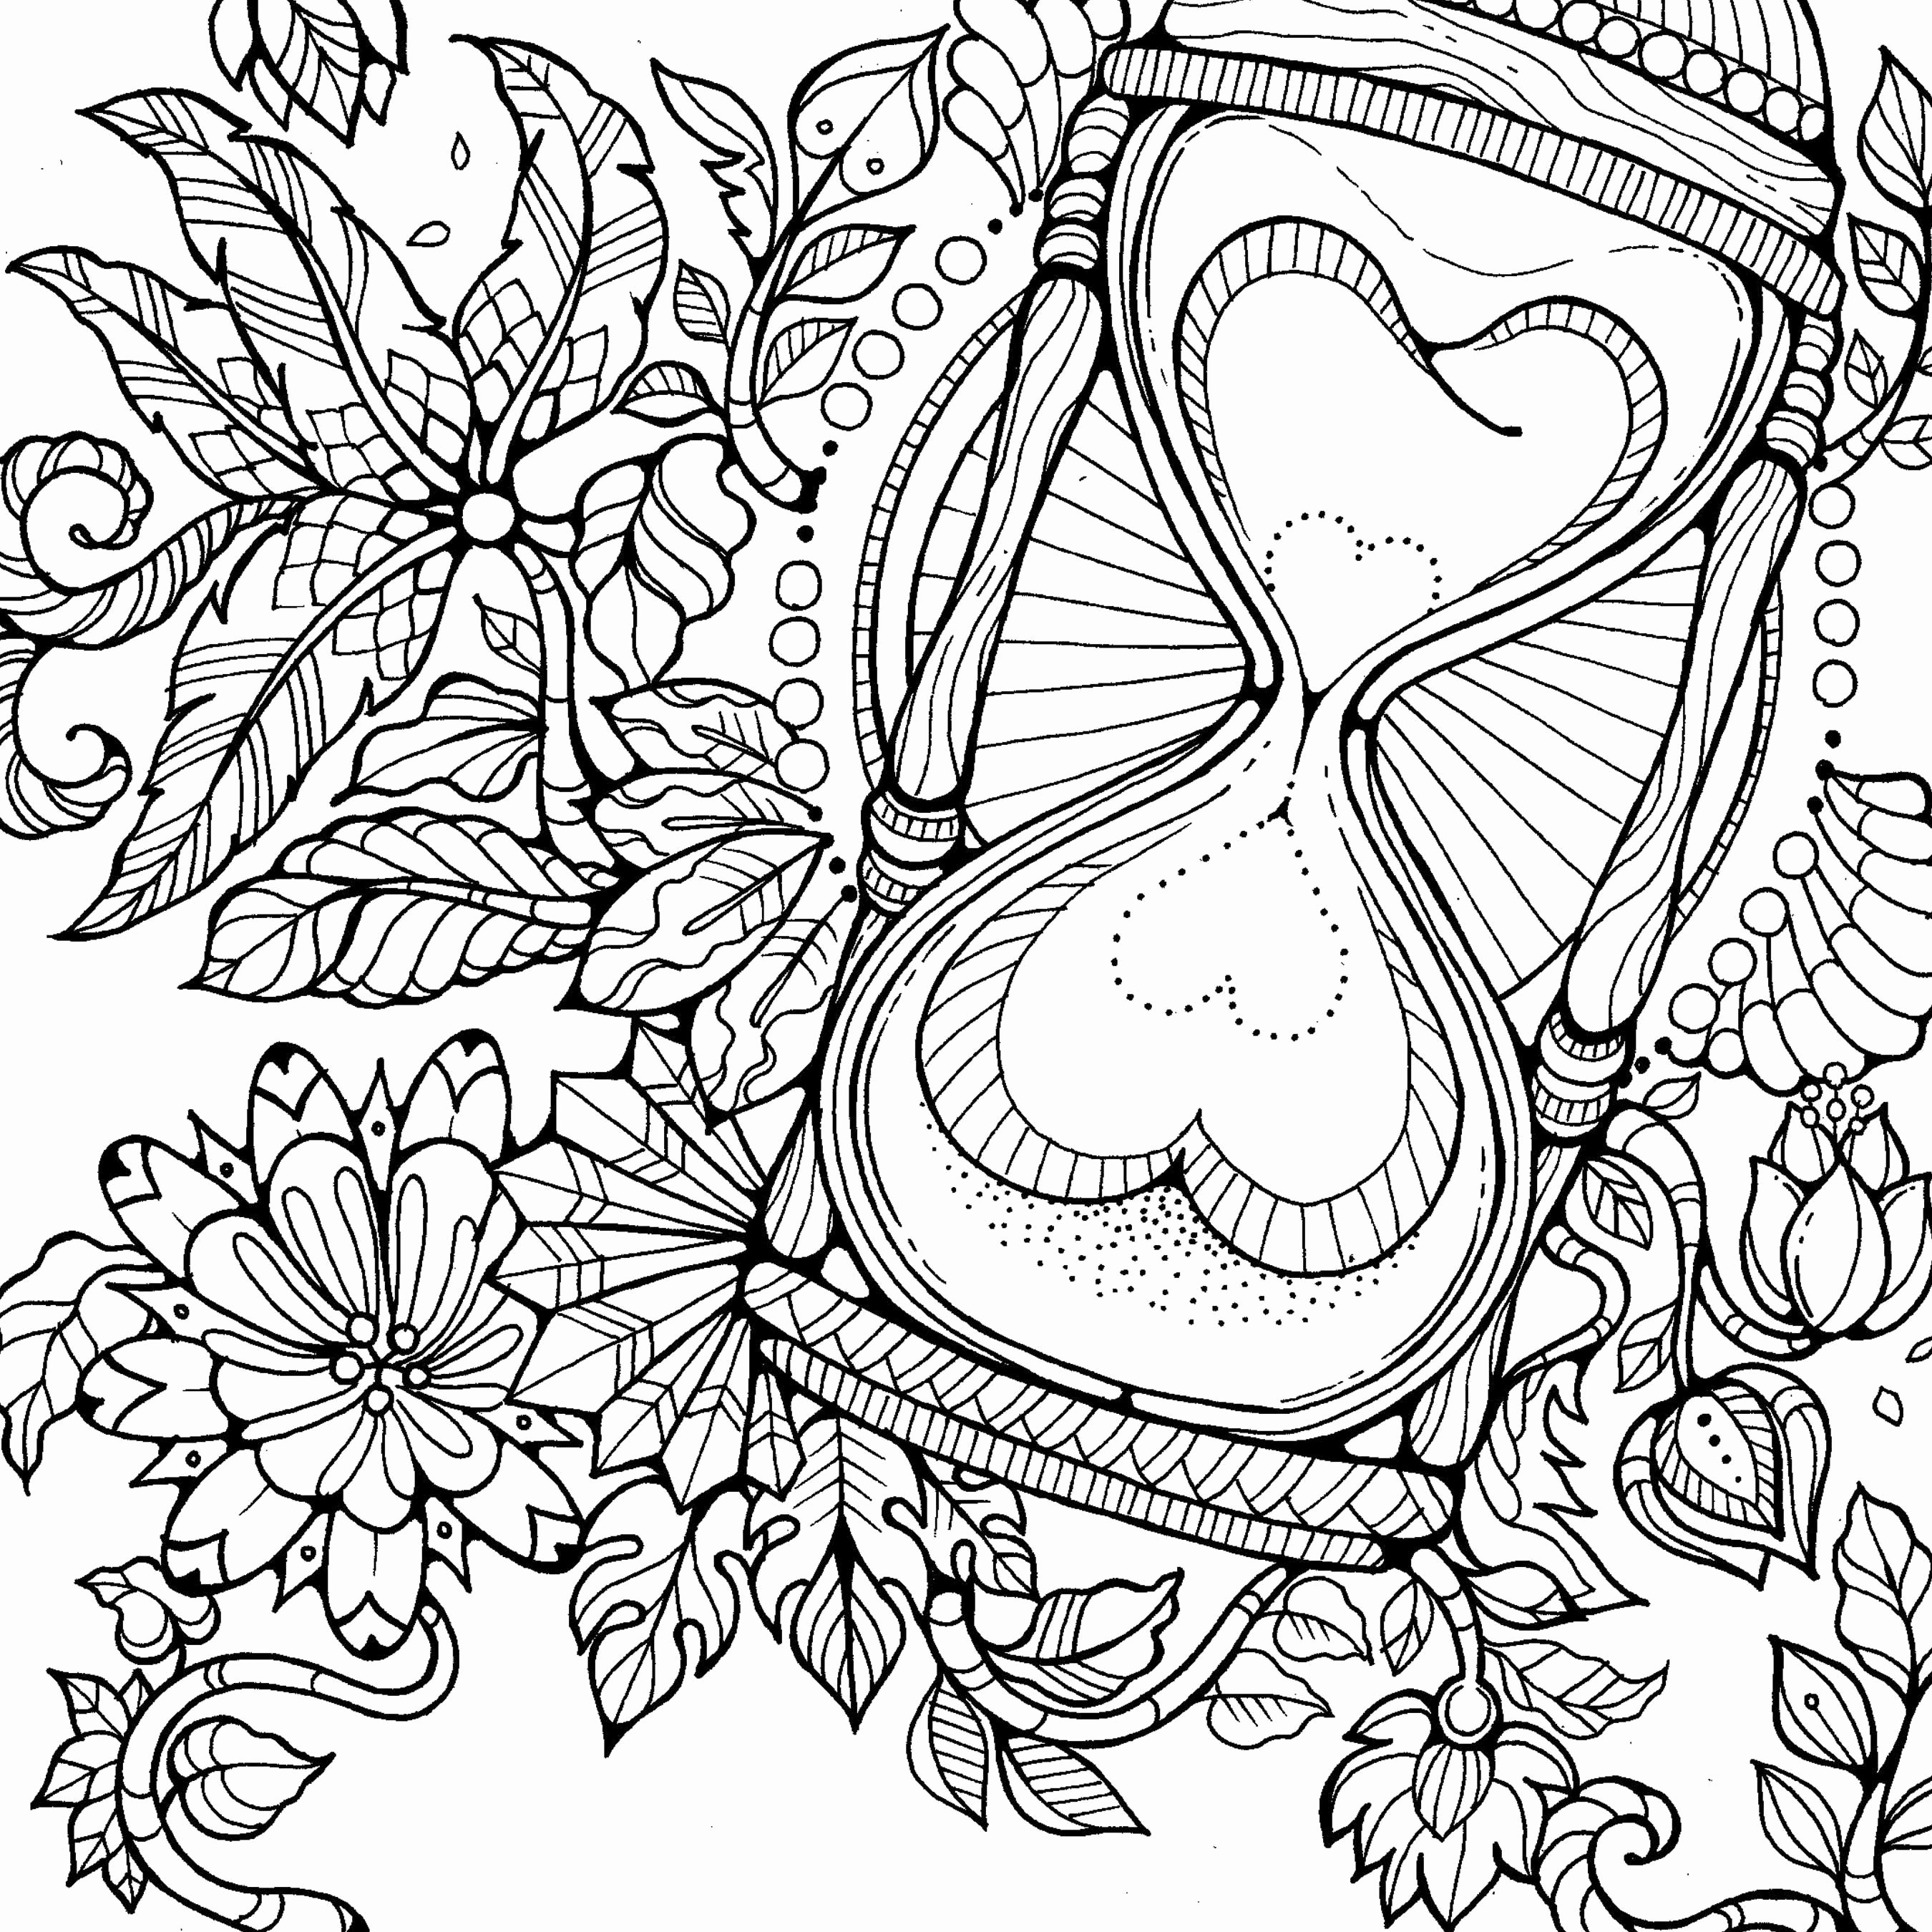 Puzzle Coloring Pages  Collection 2n - Save it to your computer